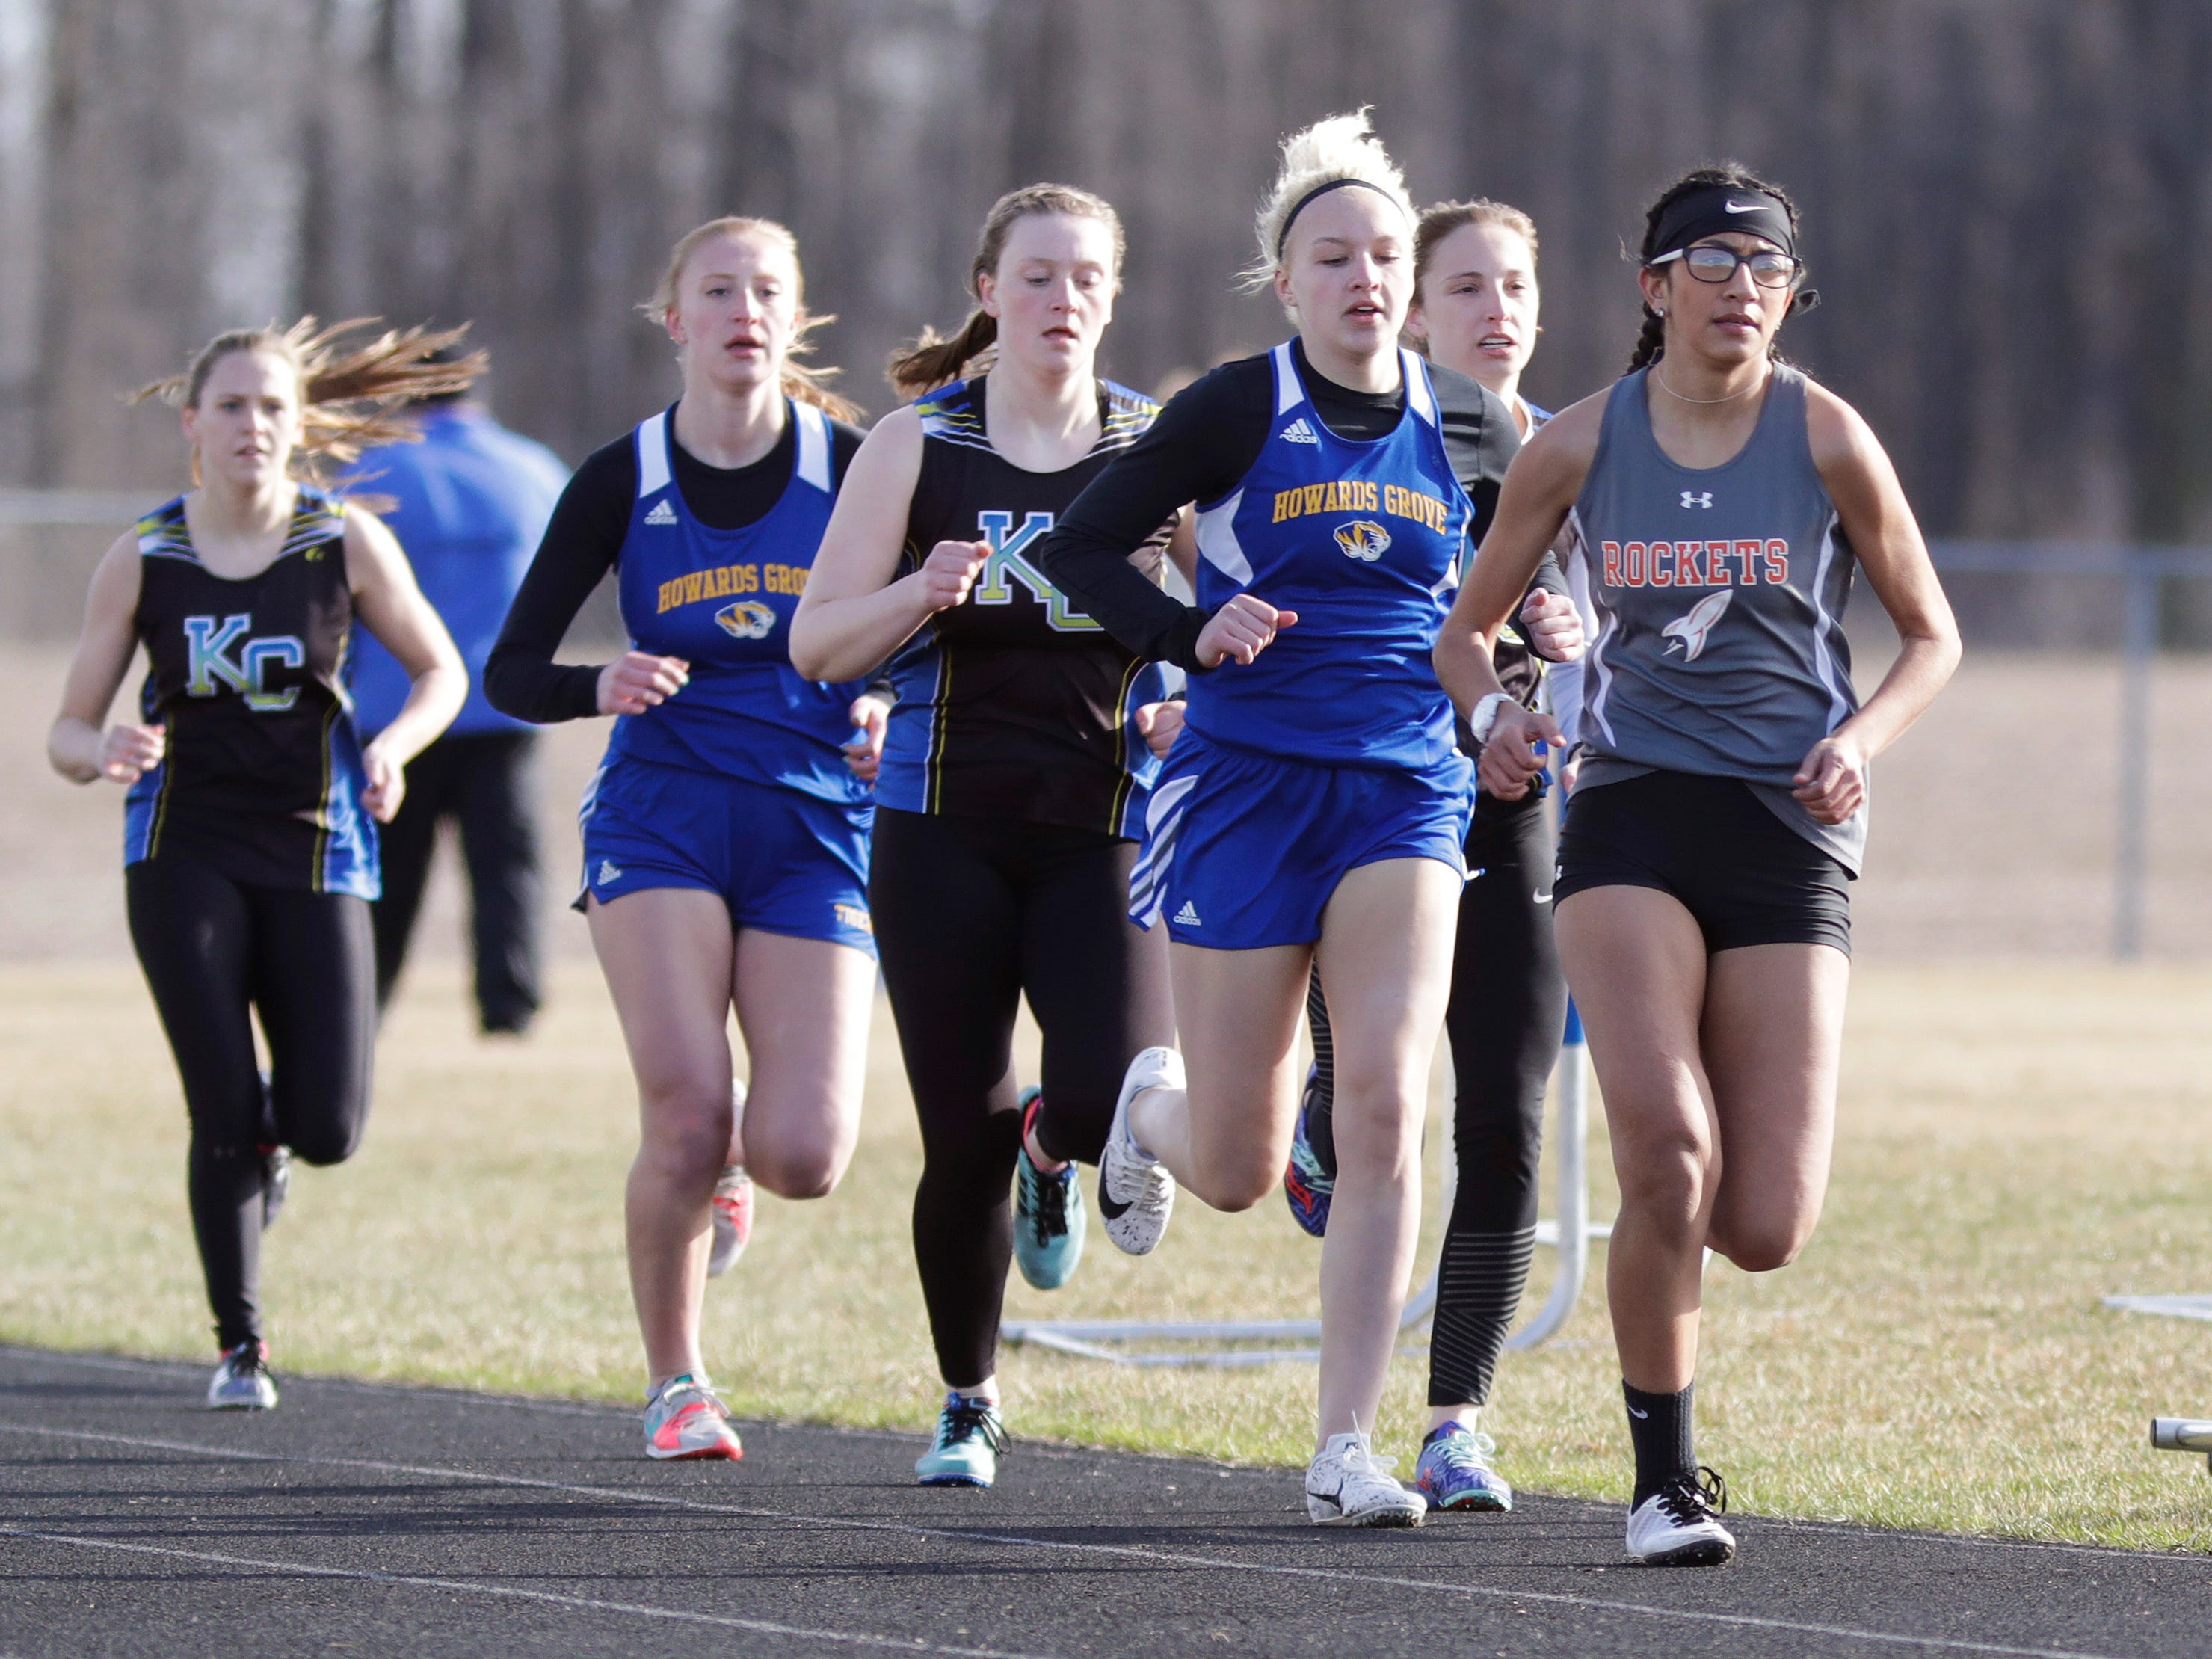 A scene from the girls 1600 meter run during the Howards Grove track meet, Tuesday, April 9, 2019, in Howards, Wis.